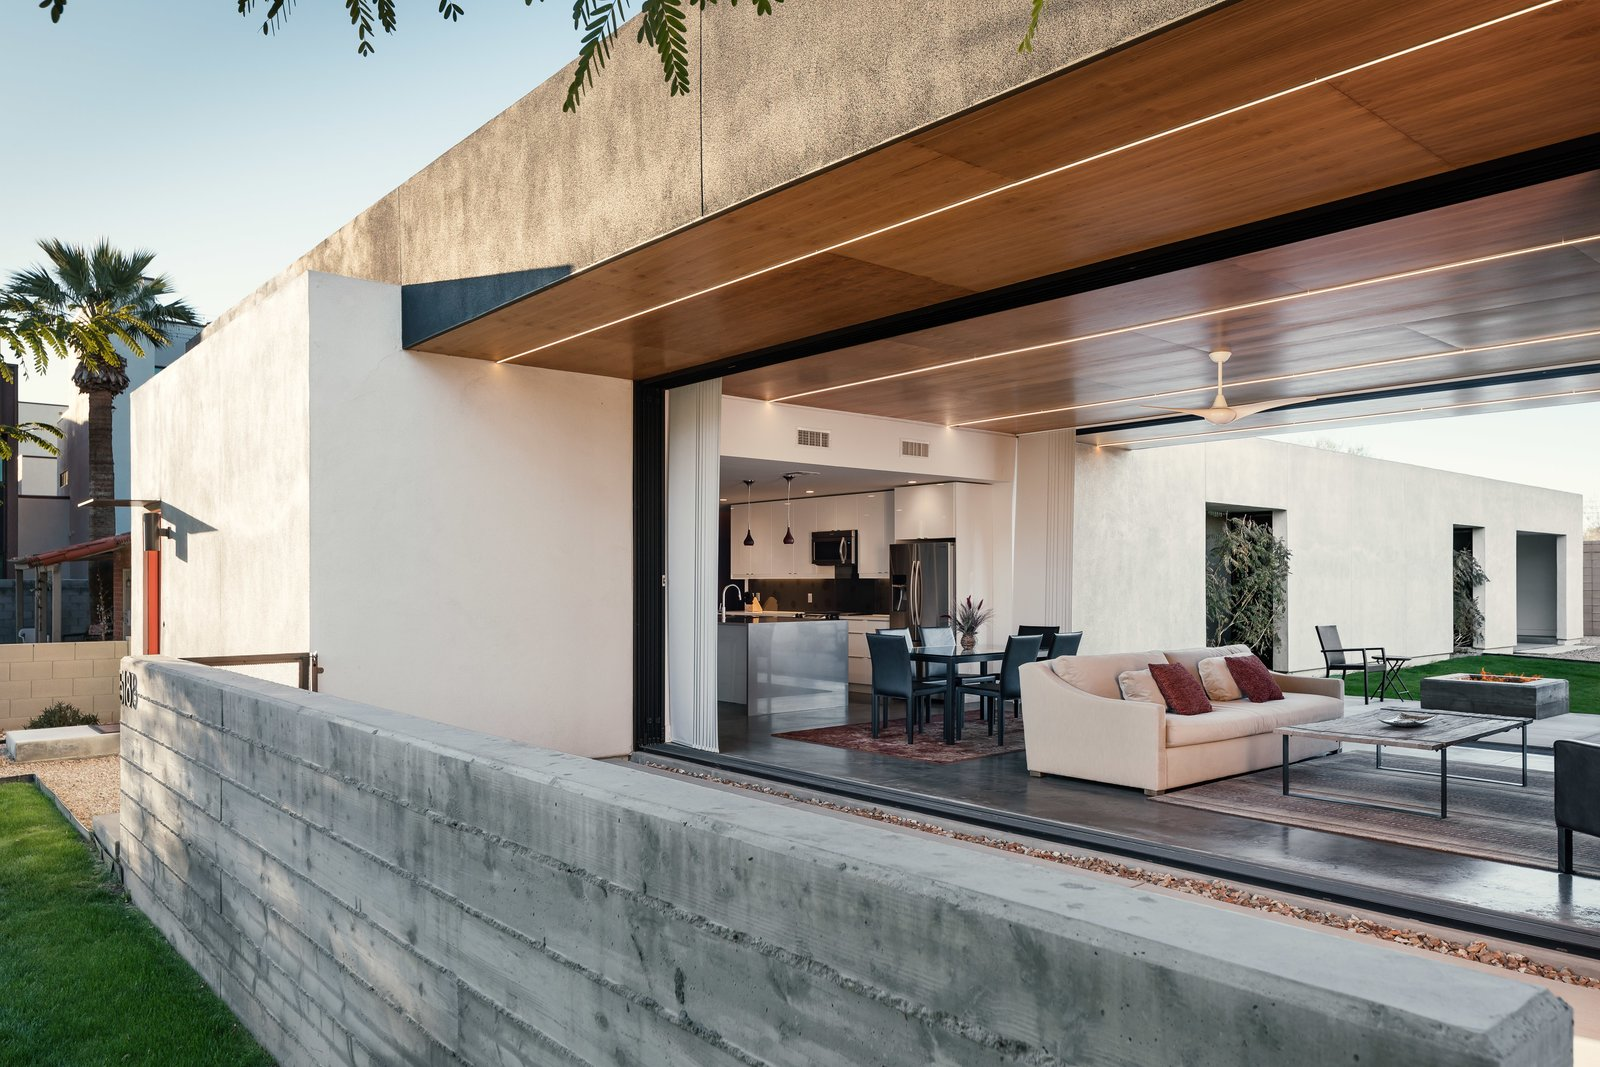 A board formed concrete wall creates a solid barrier off of the open living space to allow the homeowner to feel safe yet open to the community